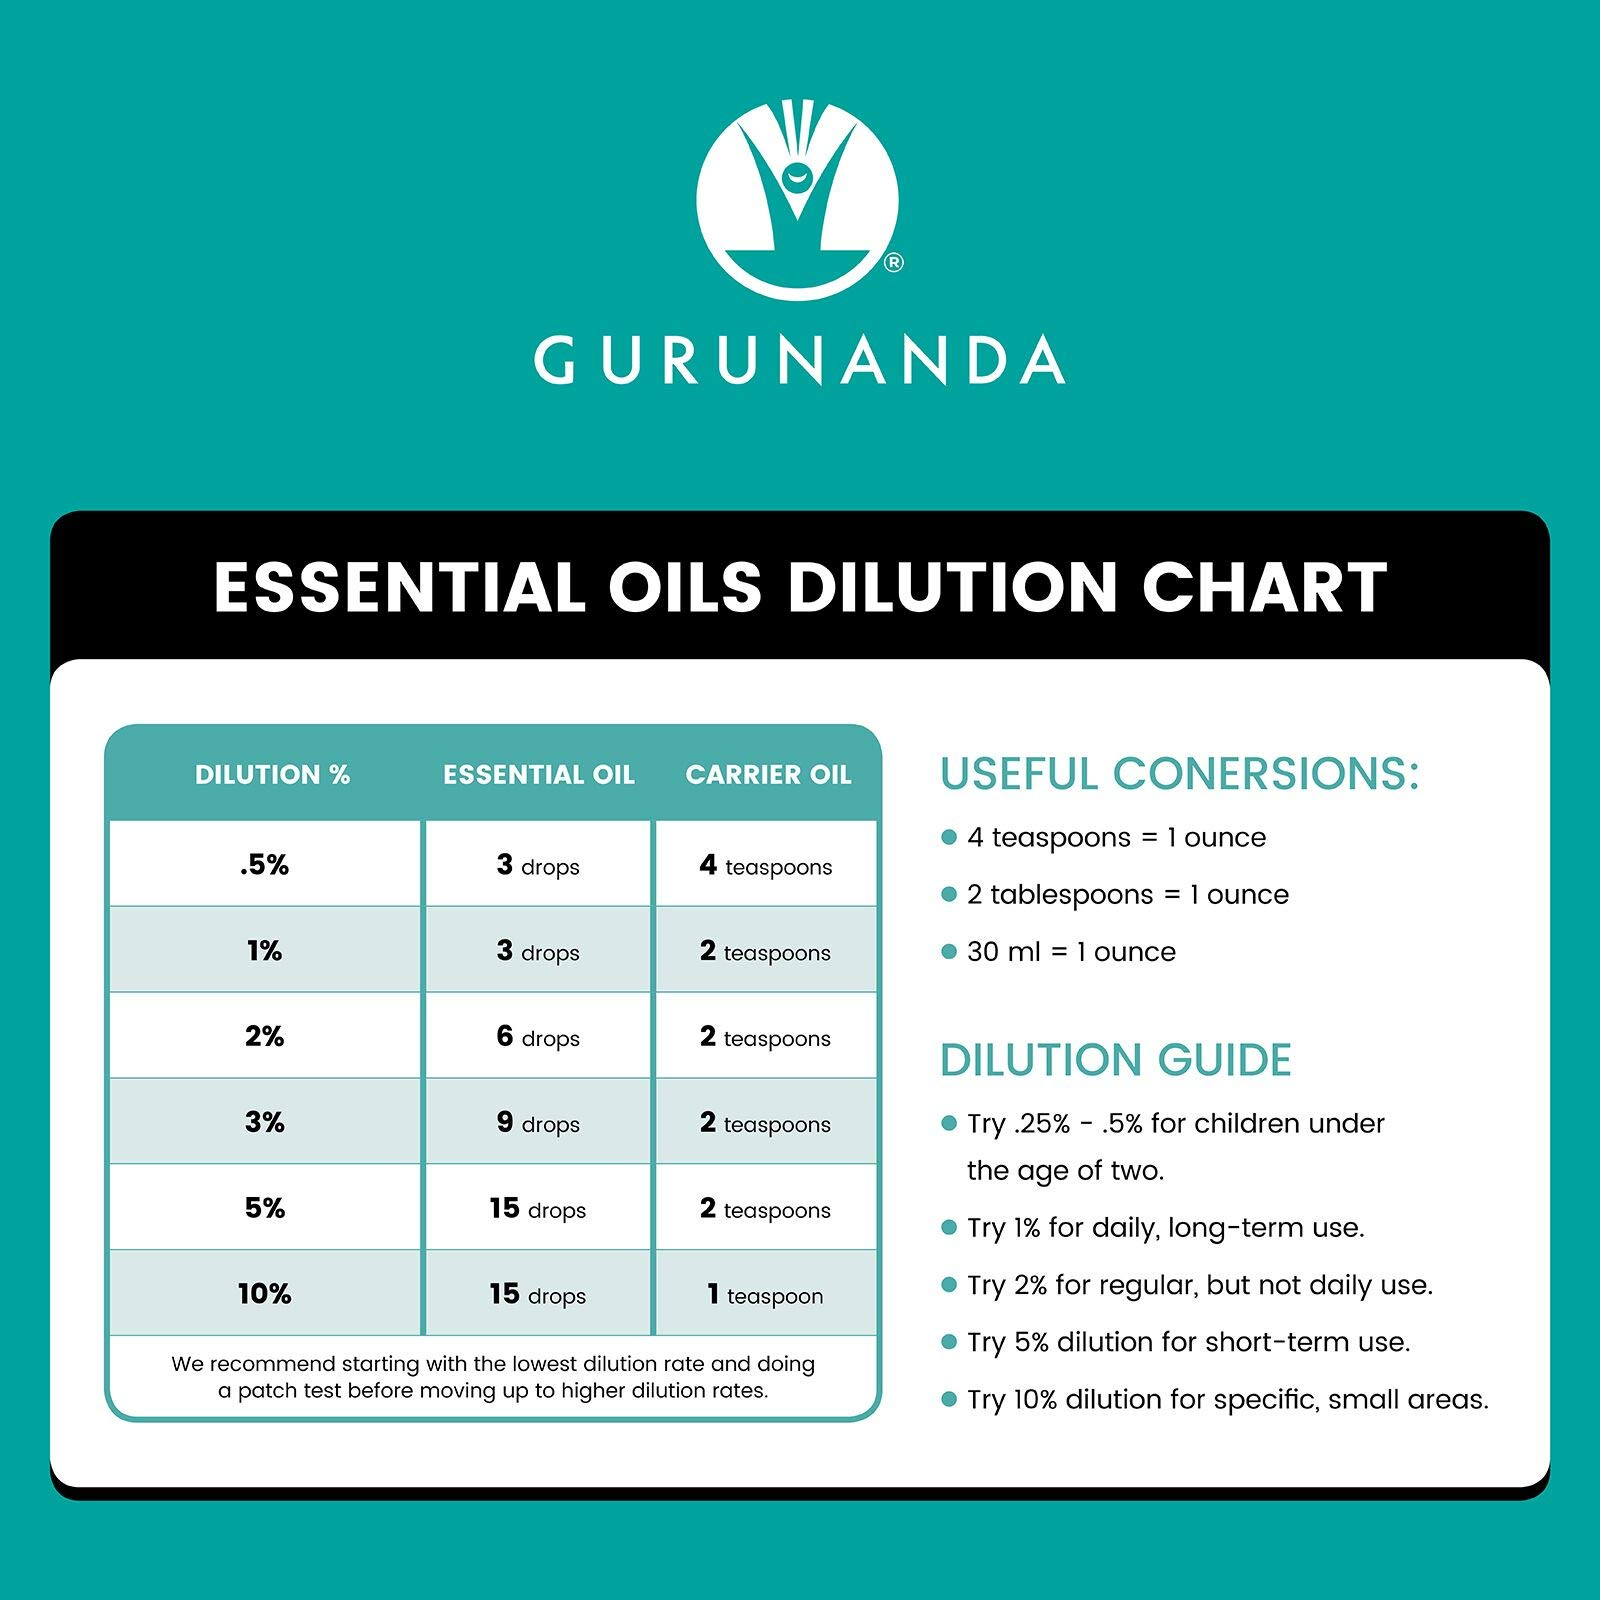 Slim Essential Oil Blends - Heal with Nature - Get The Quality You Deserve - Save with GuruNanda Best Essential Oils Blend for Appetite Management - 100% Pure Therapeutic Grade - 15ml (5 Pack) by GuruNanda